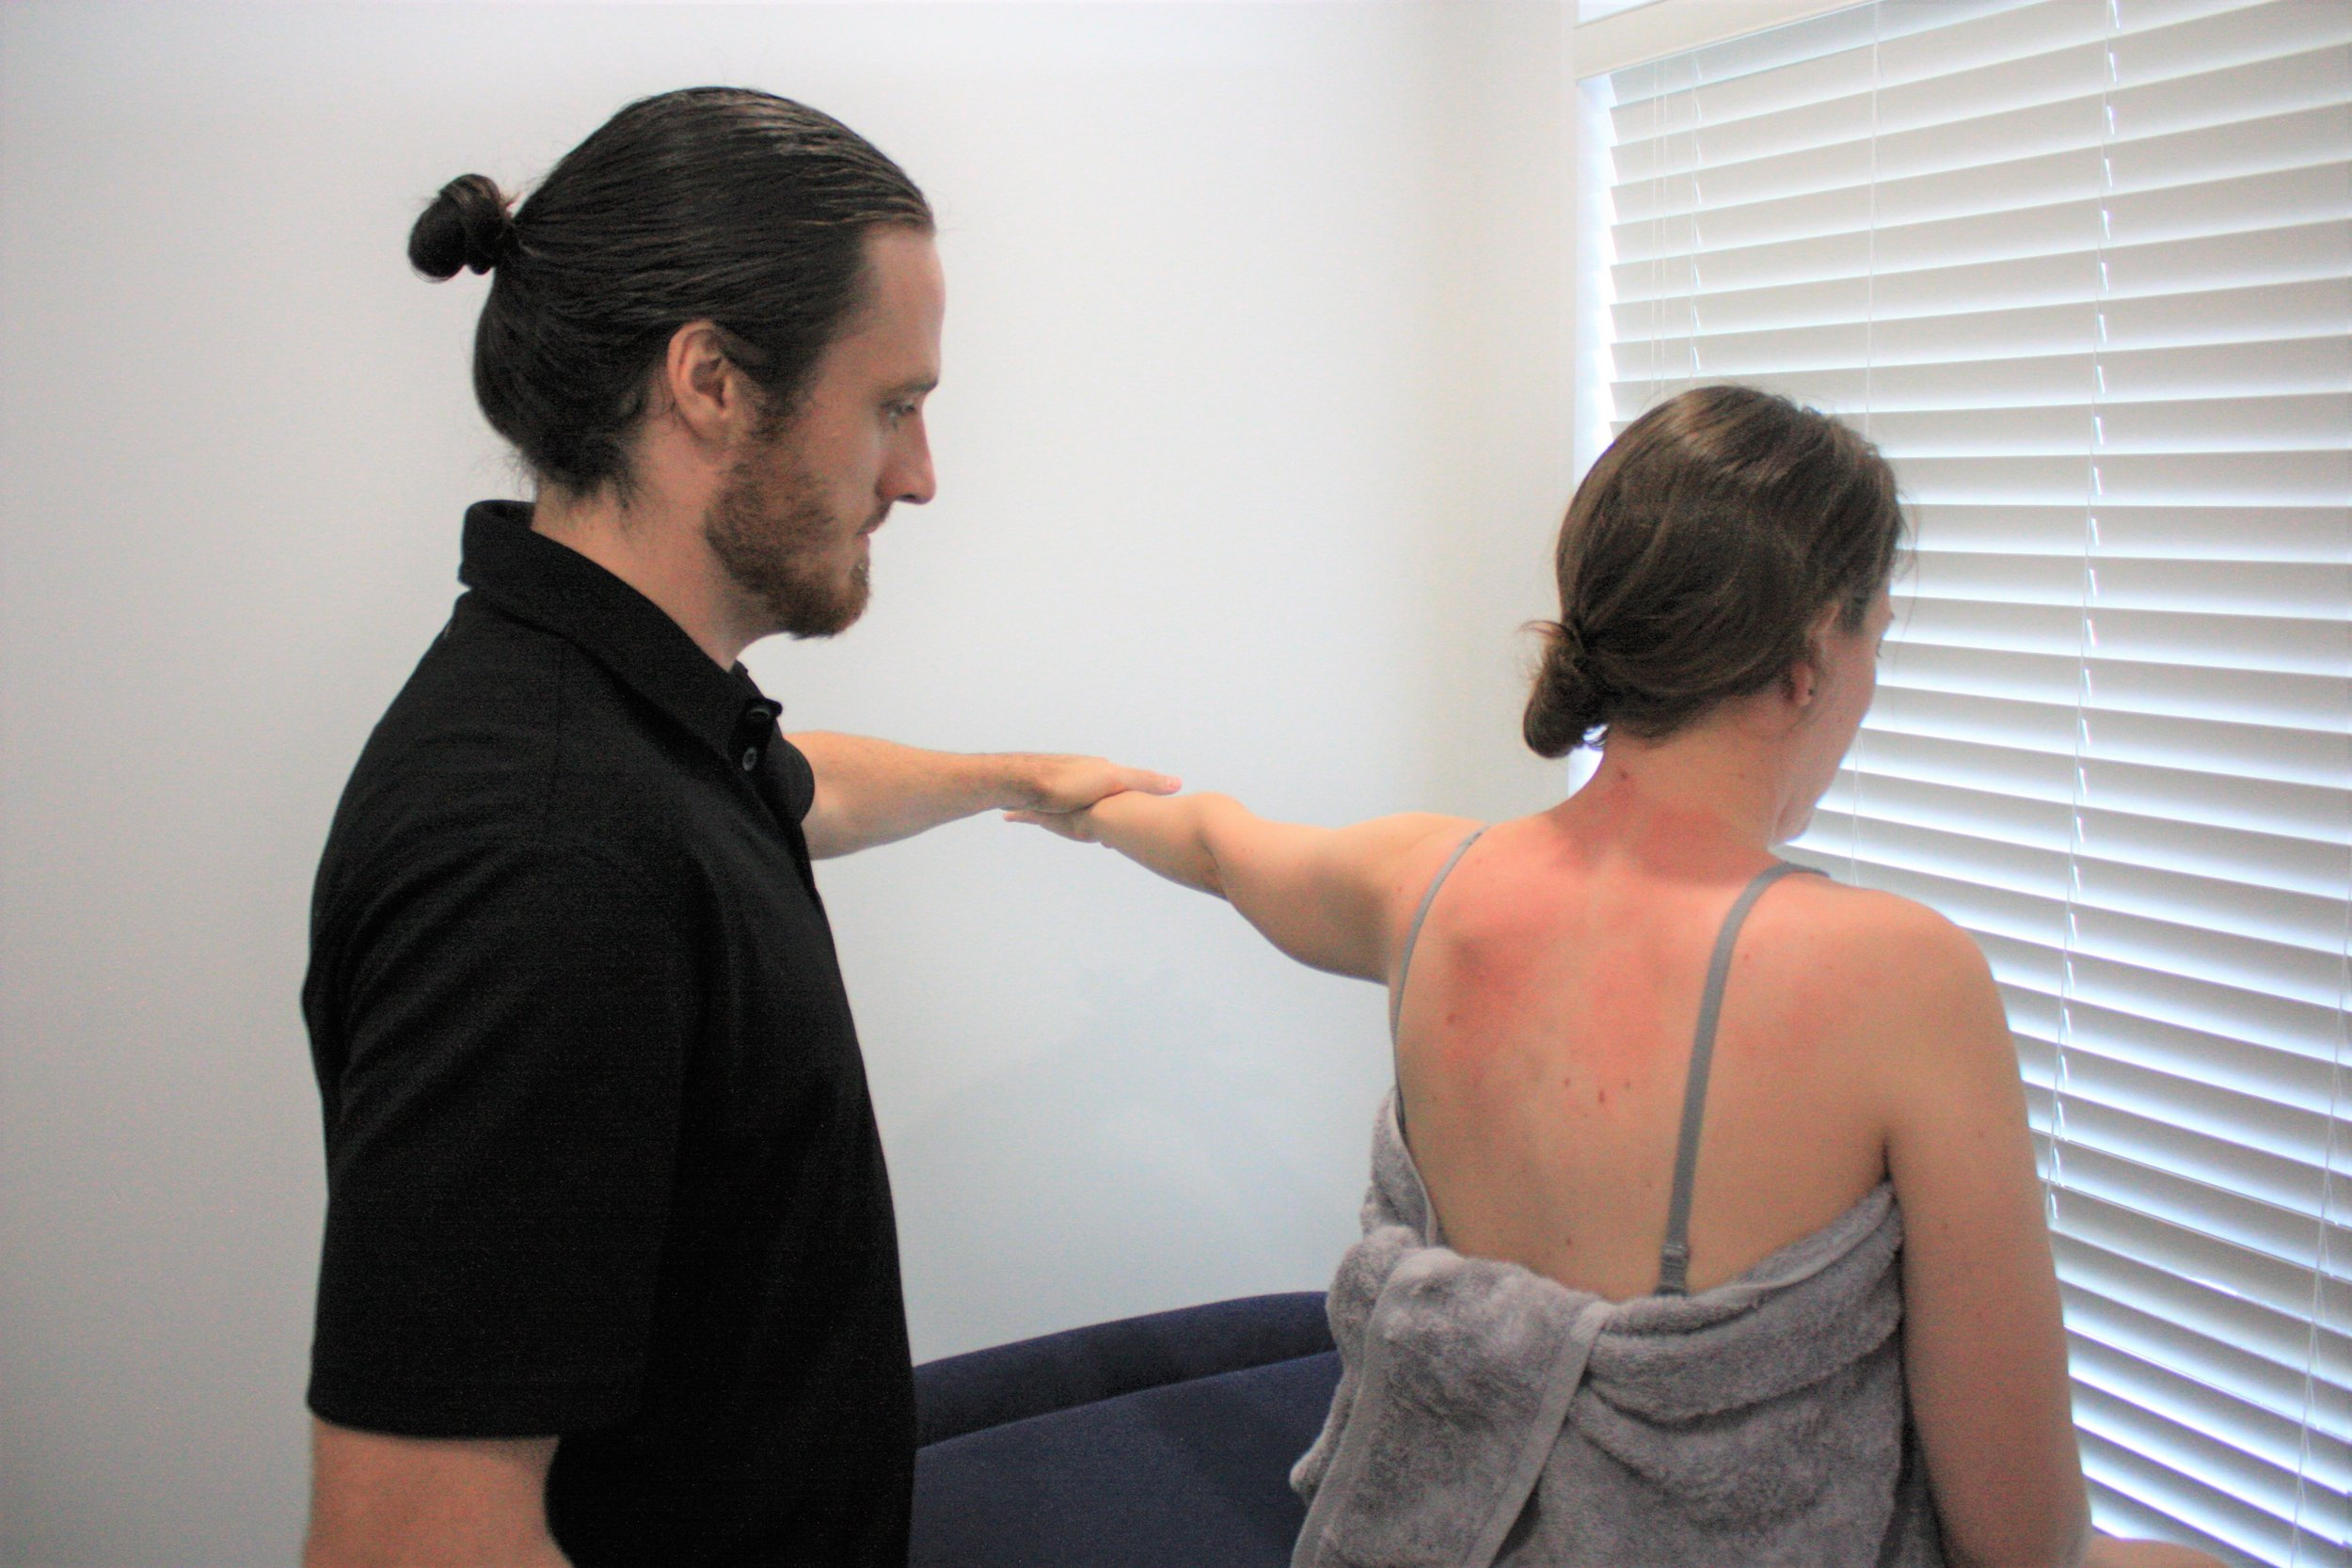 Shoulder pain diagnosis at our Gold Coast Acupuncture clinic